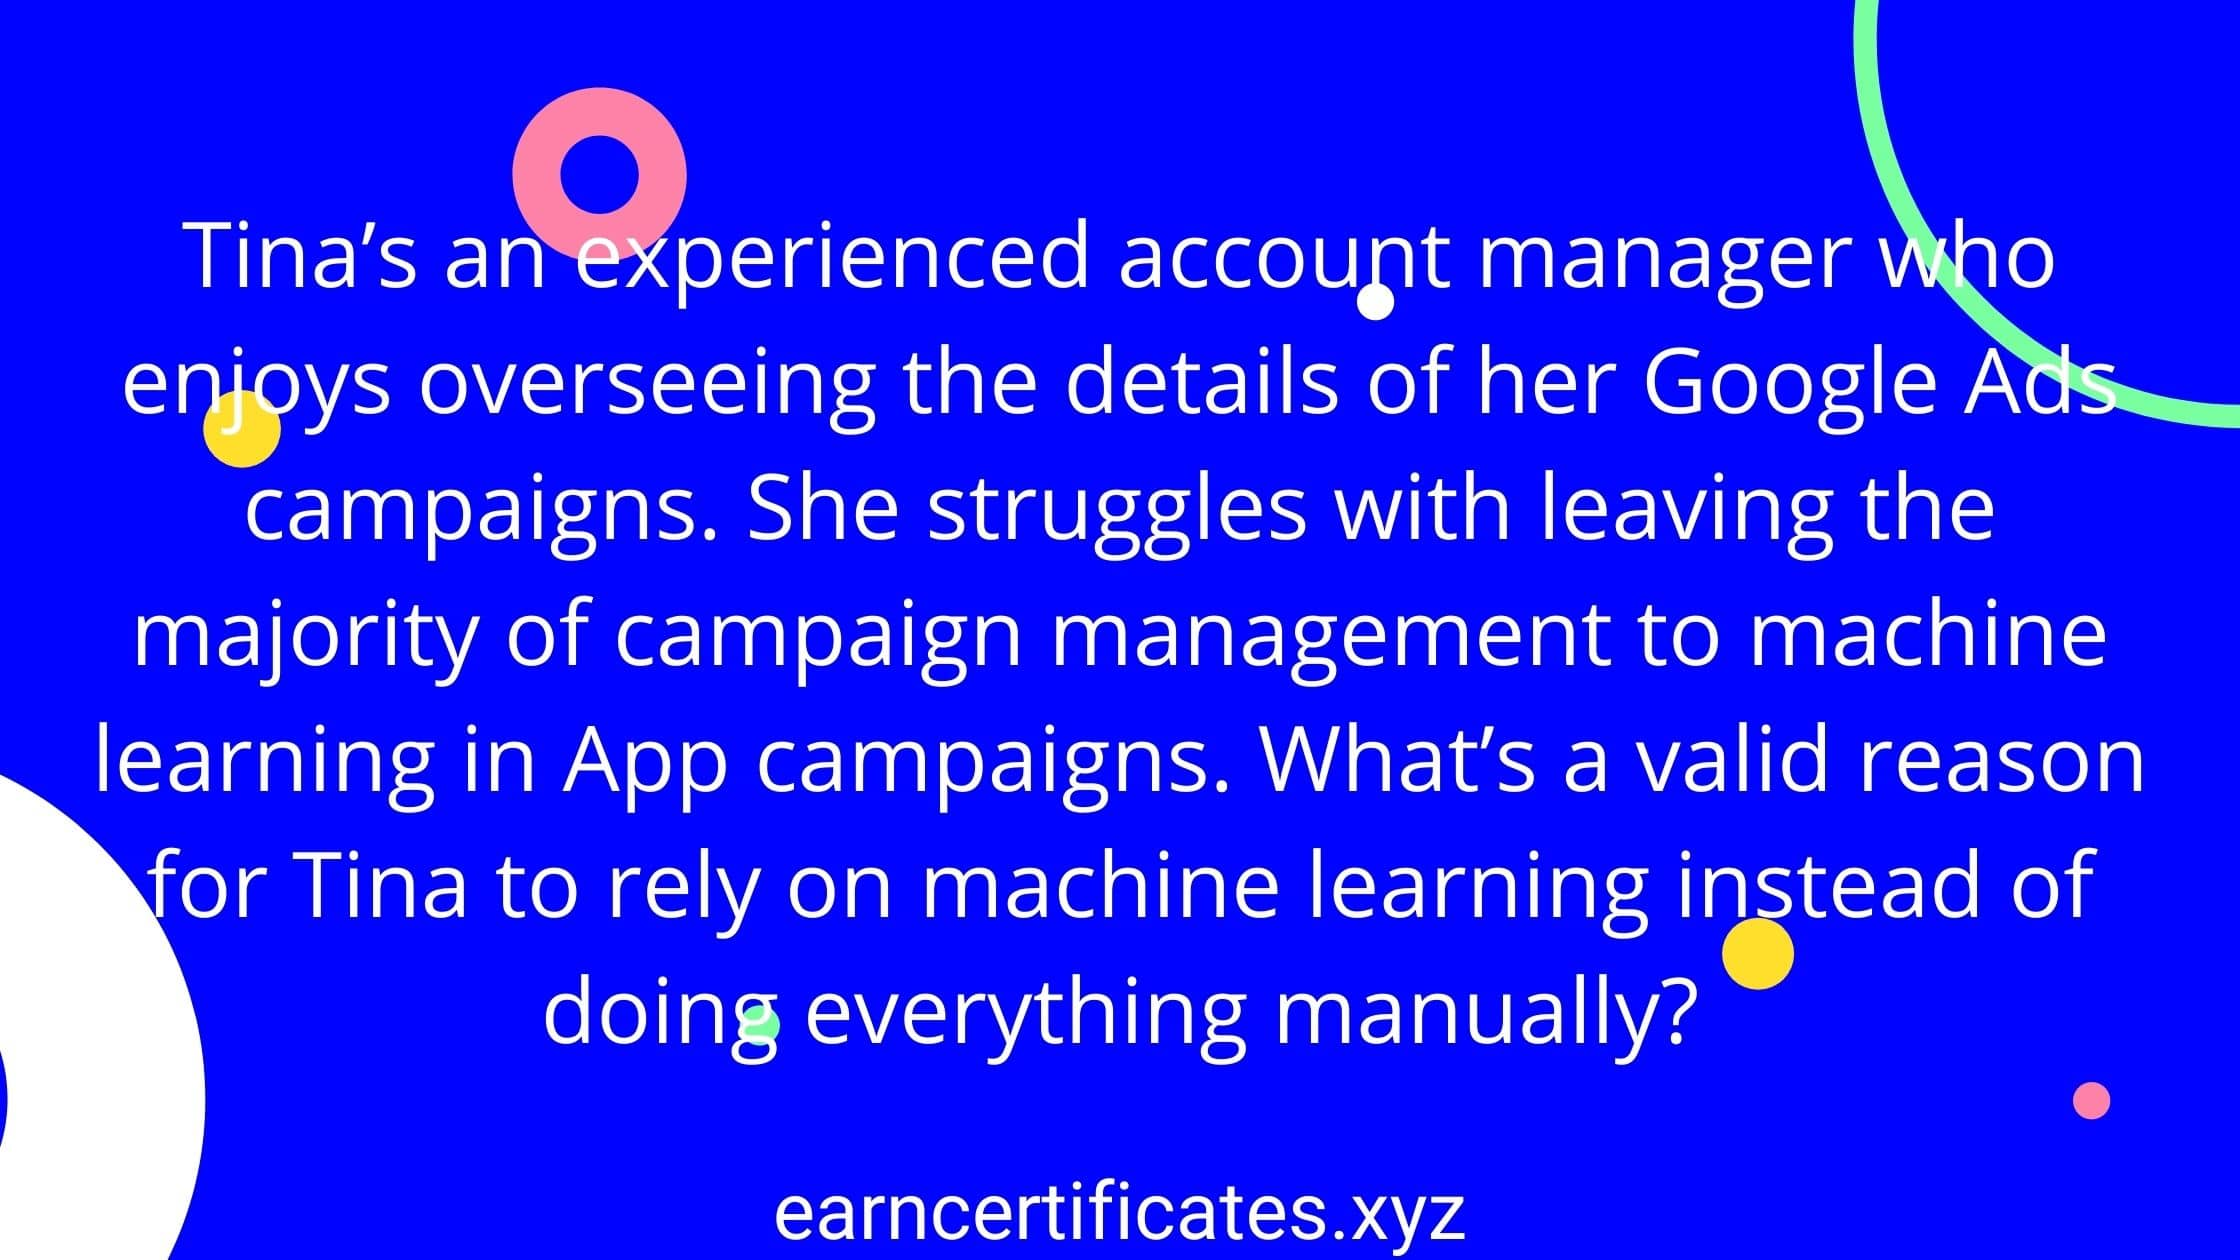 Tina's an experienced account manager who enjoys overseeing the details of her Google Ads campaigns. She struggles with leaving the majority of campaign management to machine learning in App campaigns. What's a valid reason for Tina to rely on machine learning instead of doing everything manually?